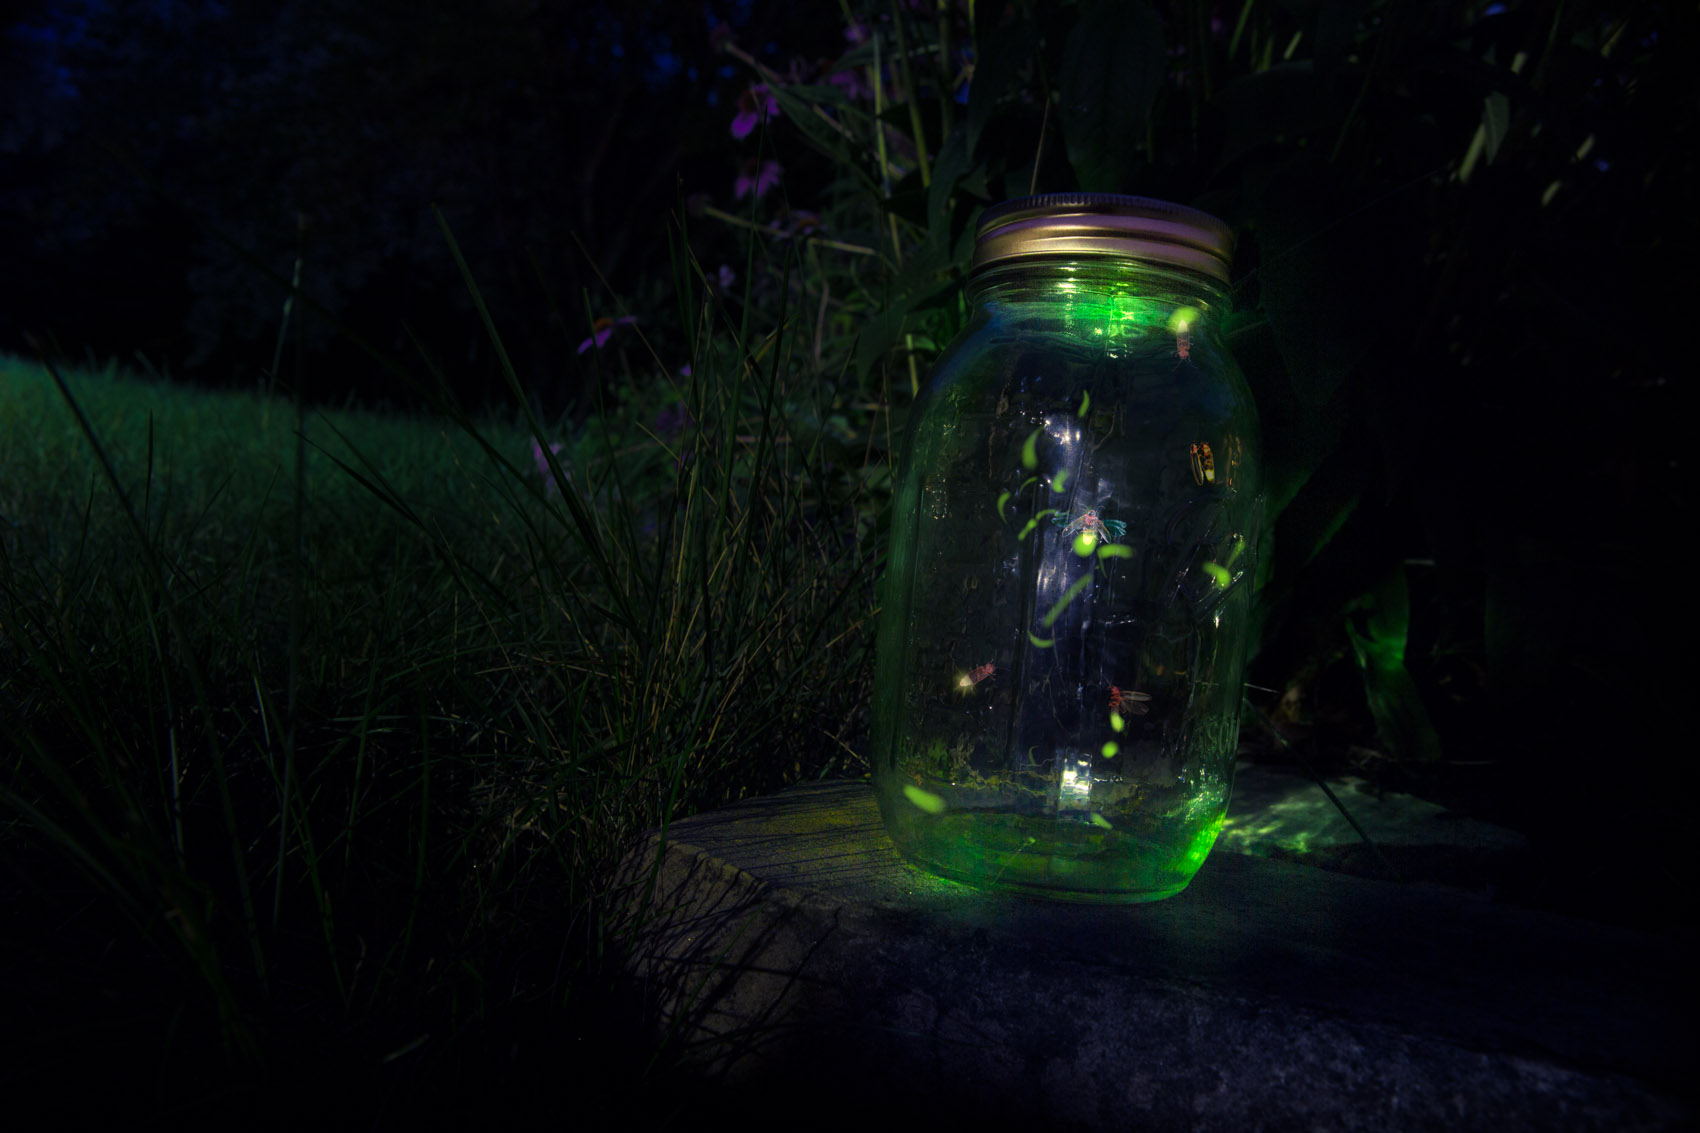 A clear glass mason jar glows green from fireflies within.